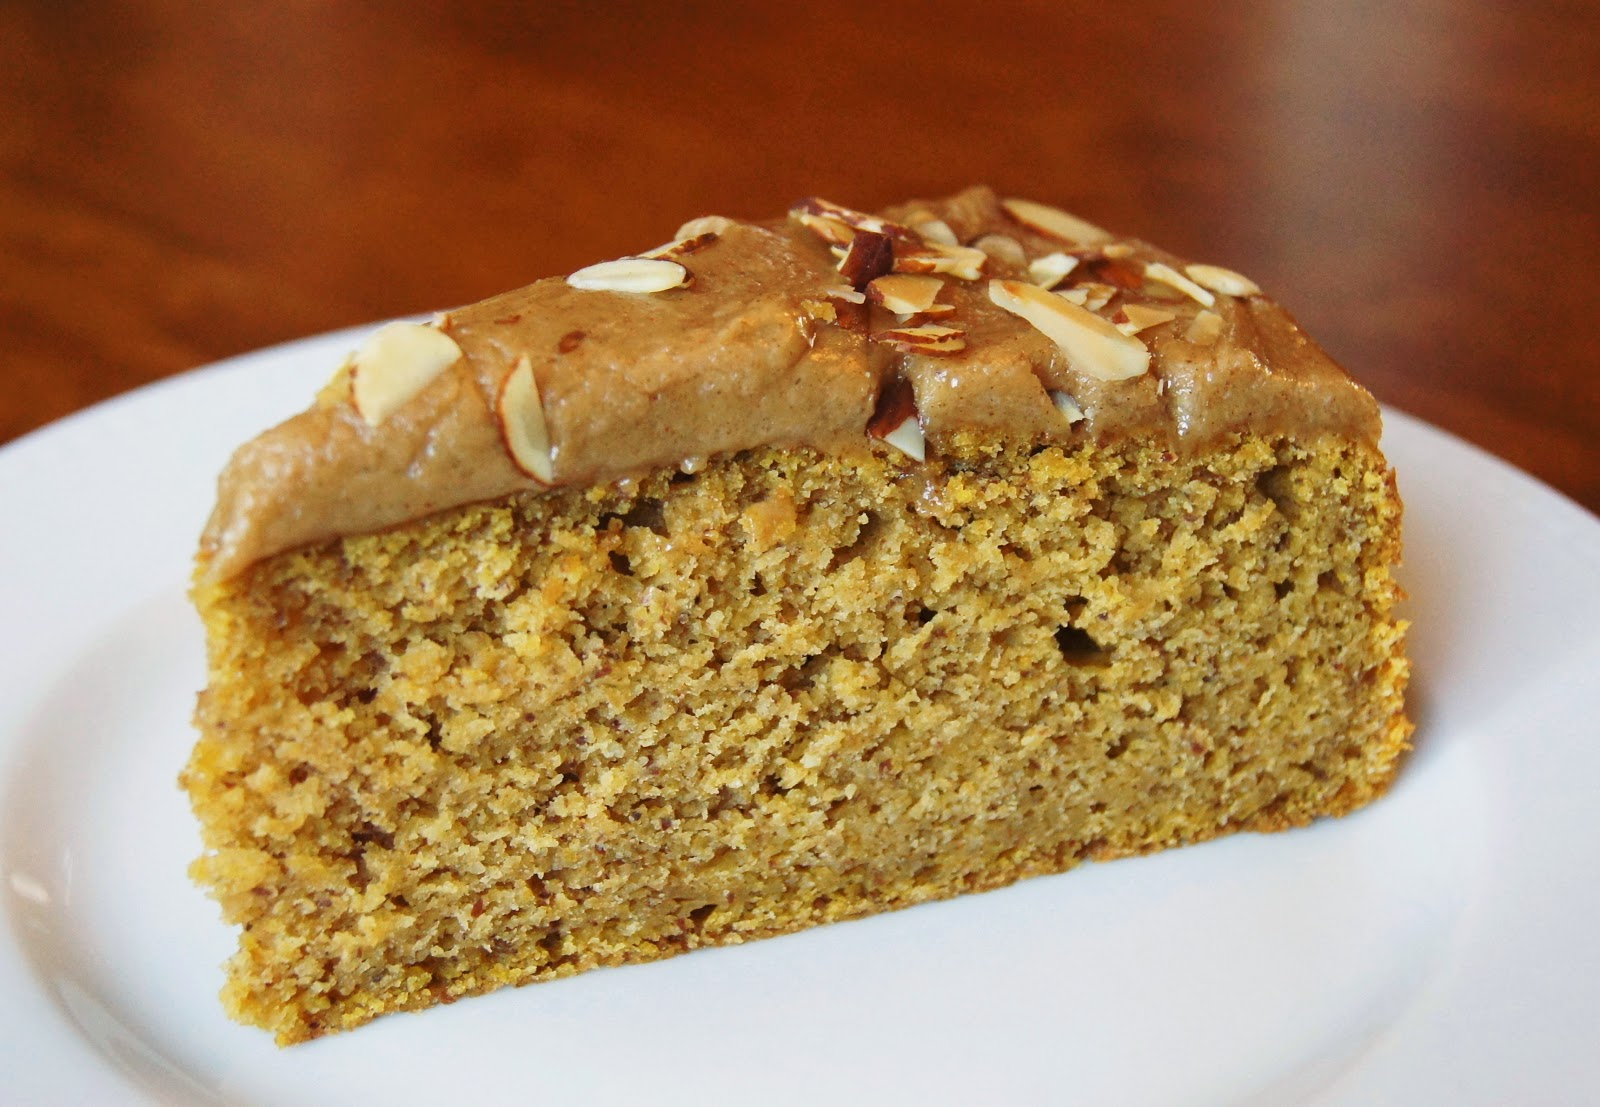 almond butter cake photo almond butter cake anise almond butter ...